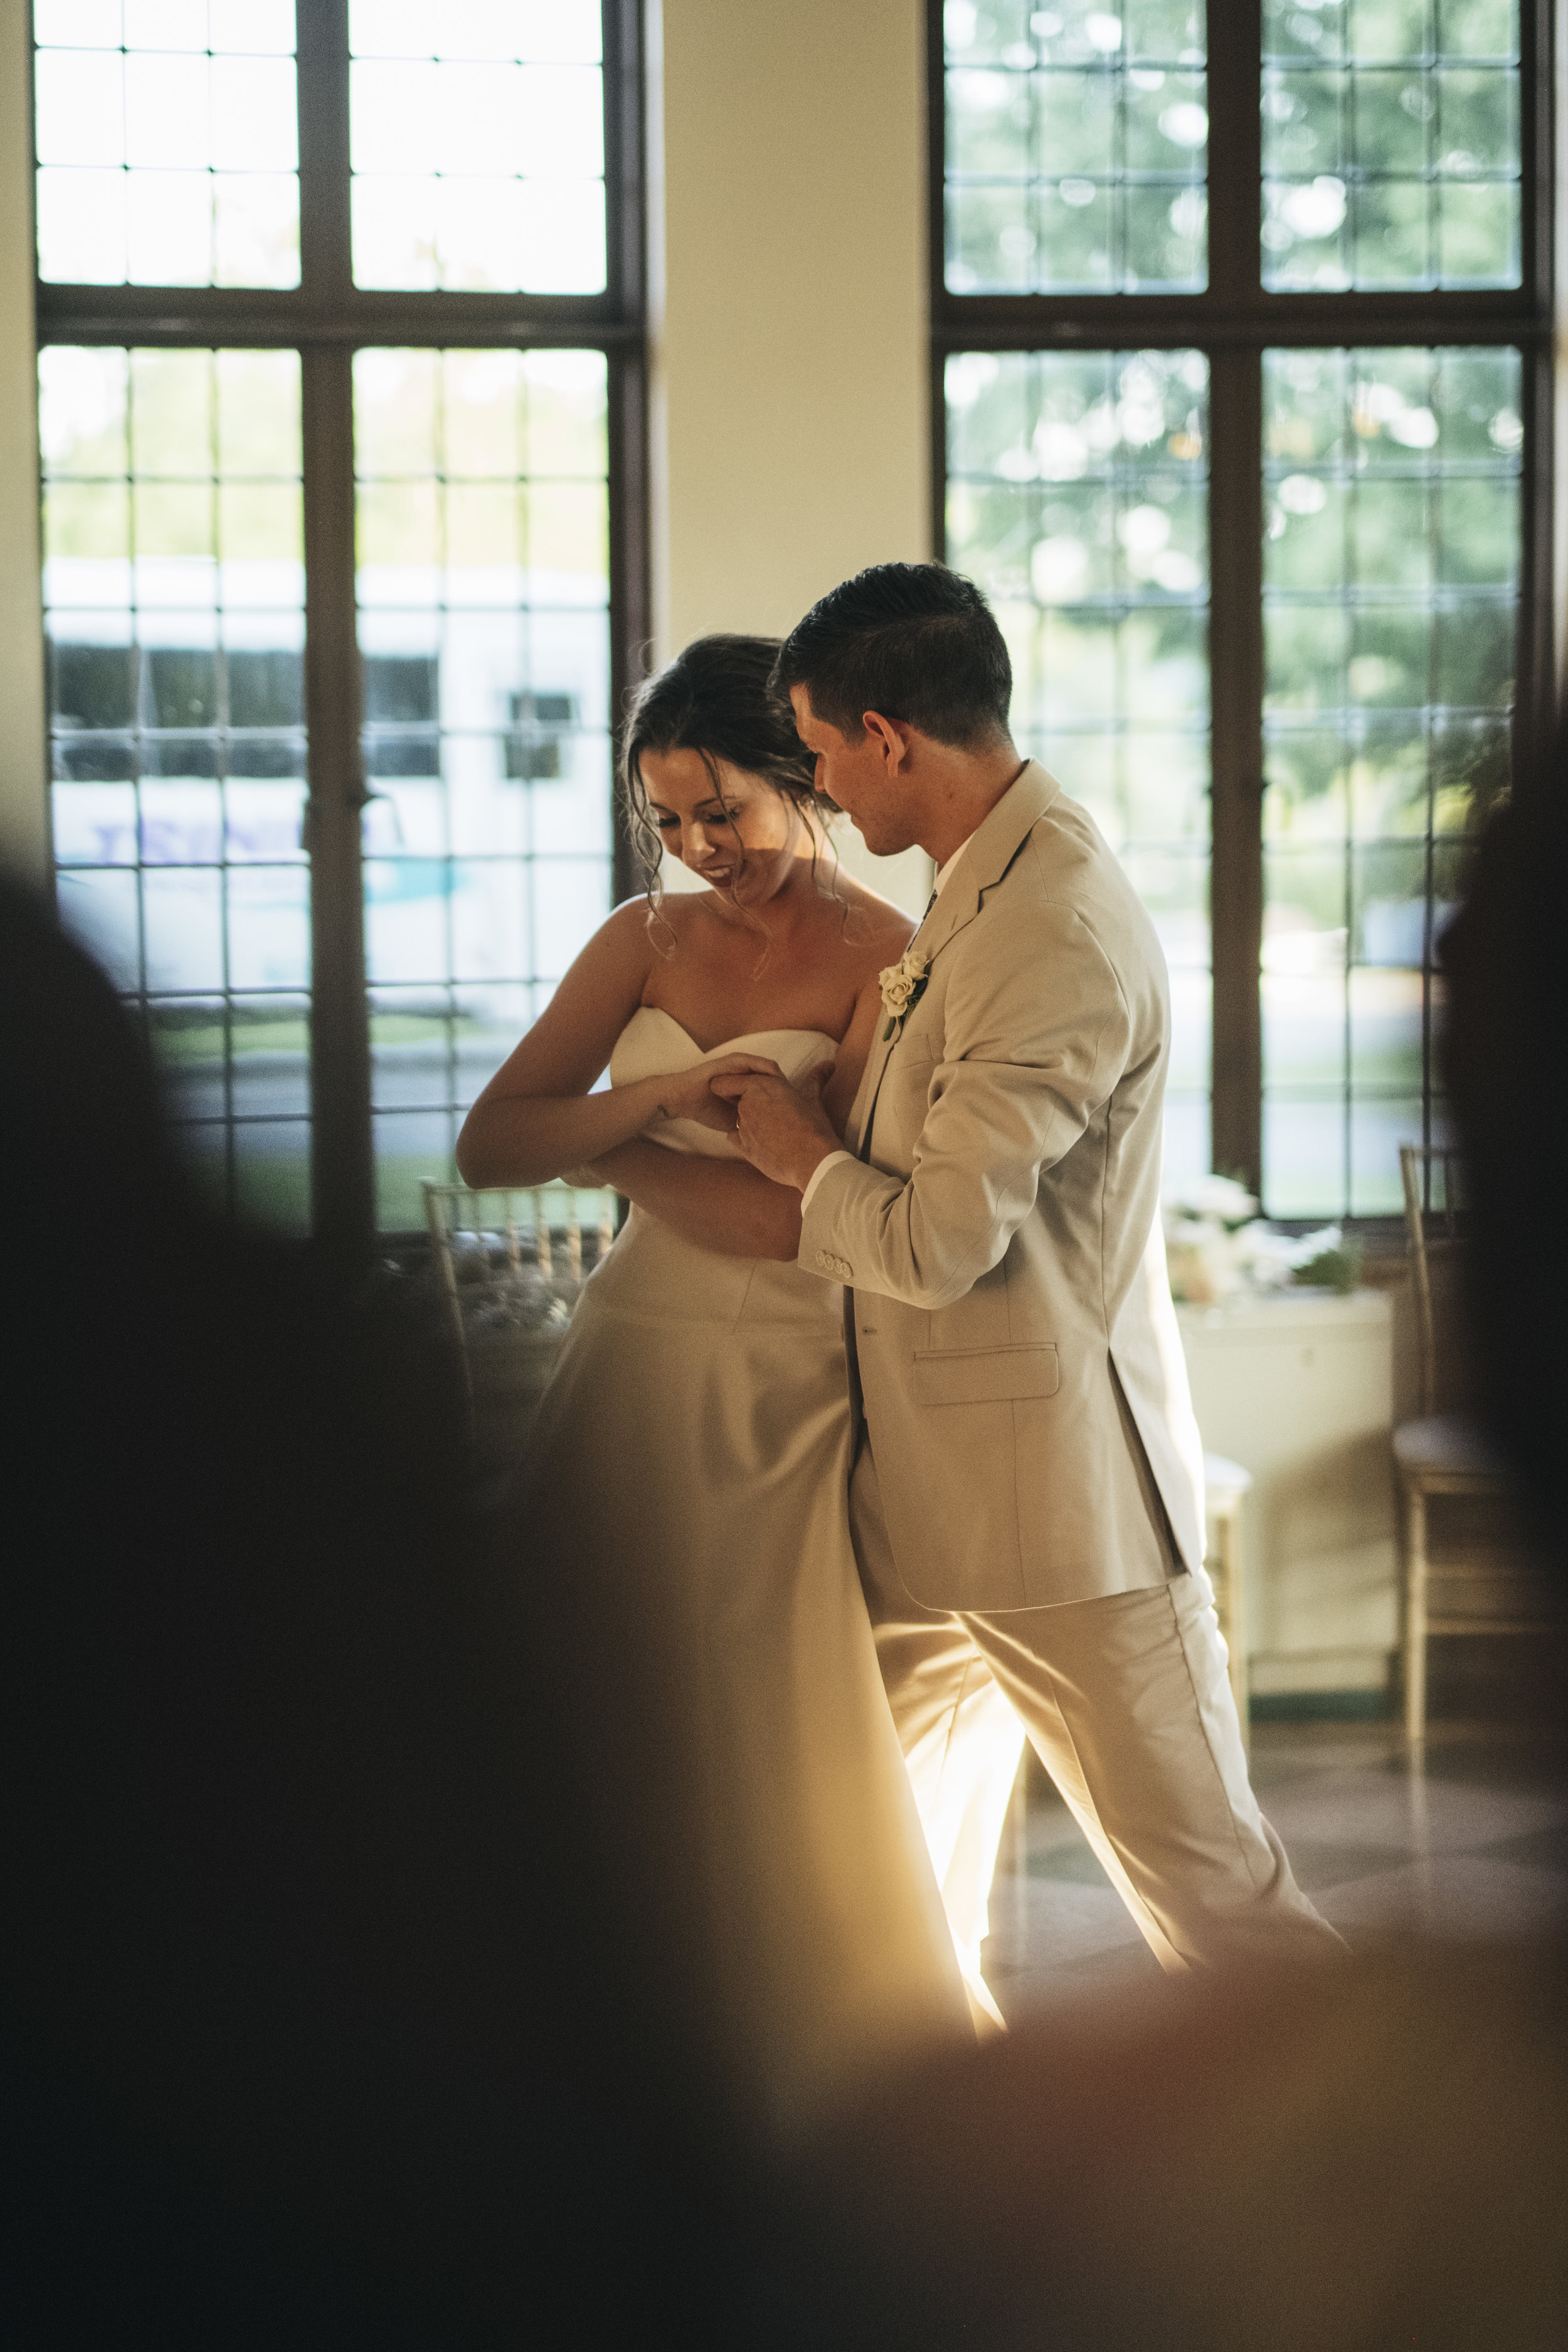 Bride and groom dance for the first time at their reception.